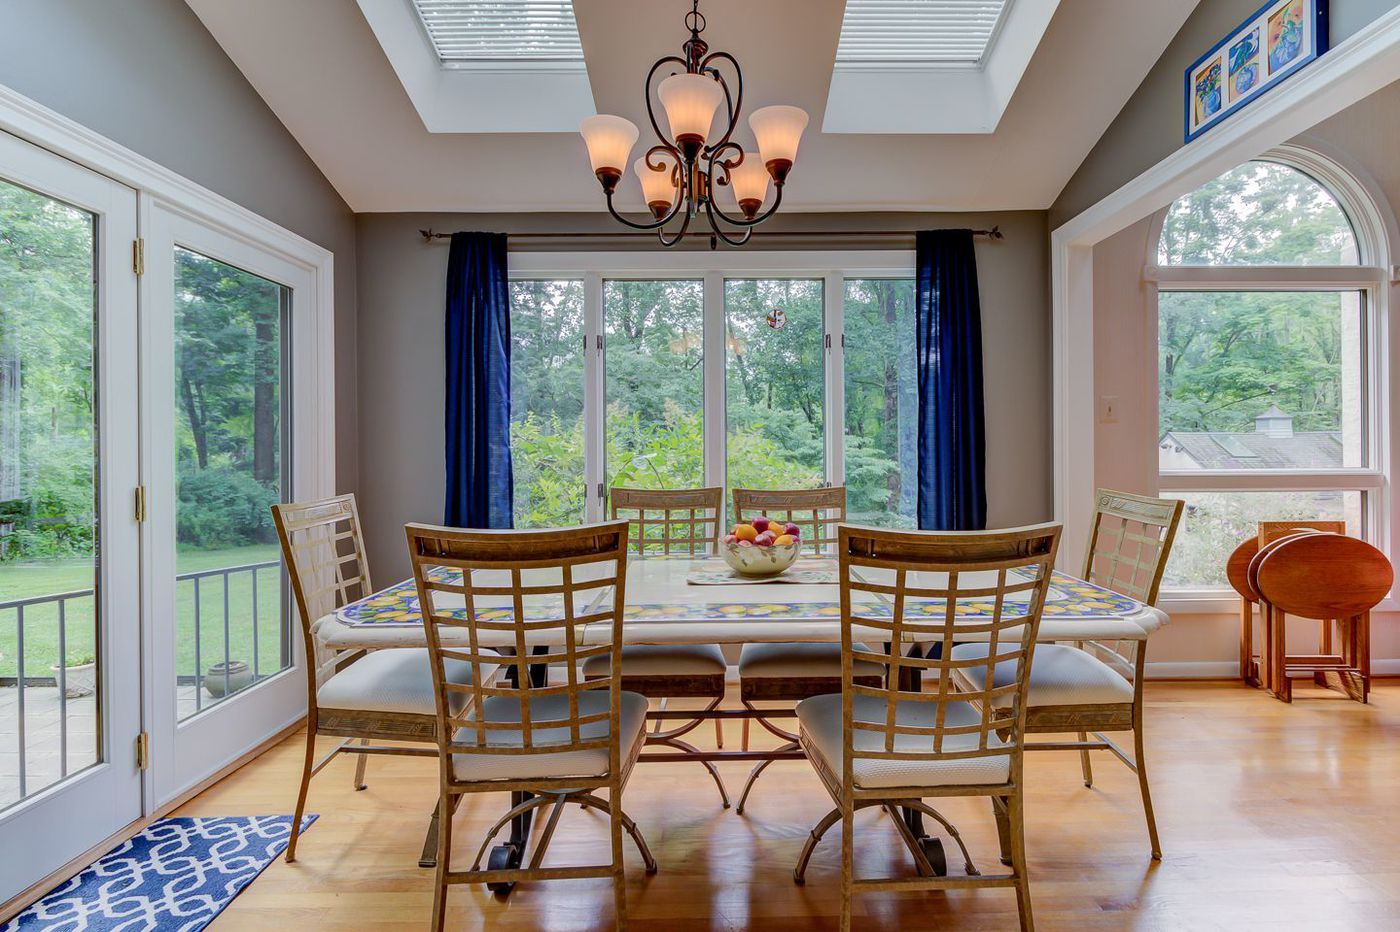 High-end real estate listings are returning in the Philly area, outpacing the recovery of the more affordable market